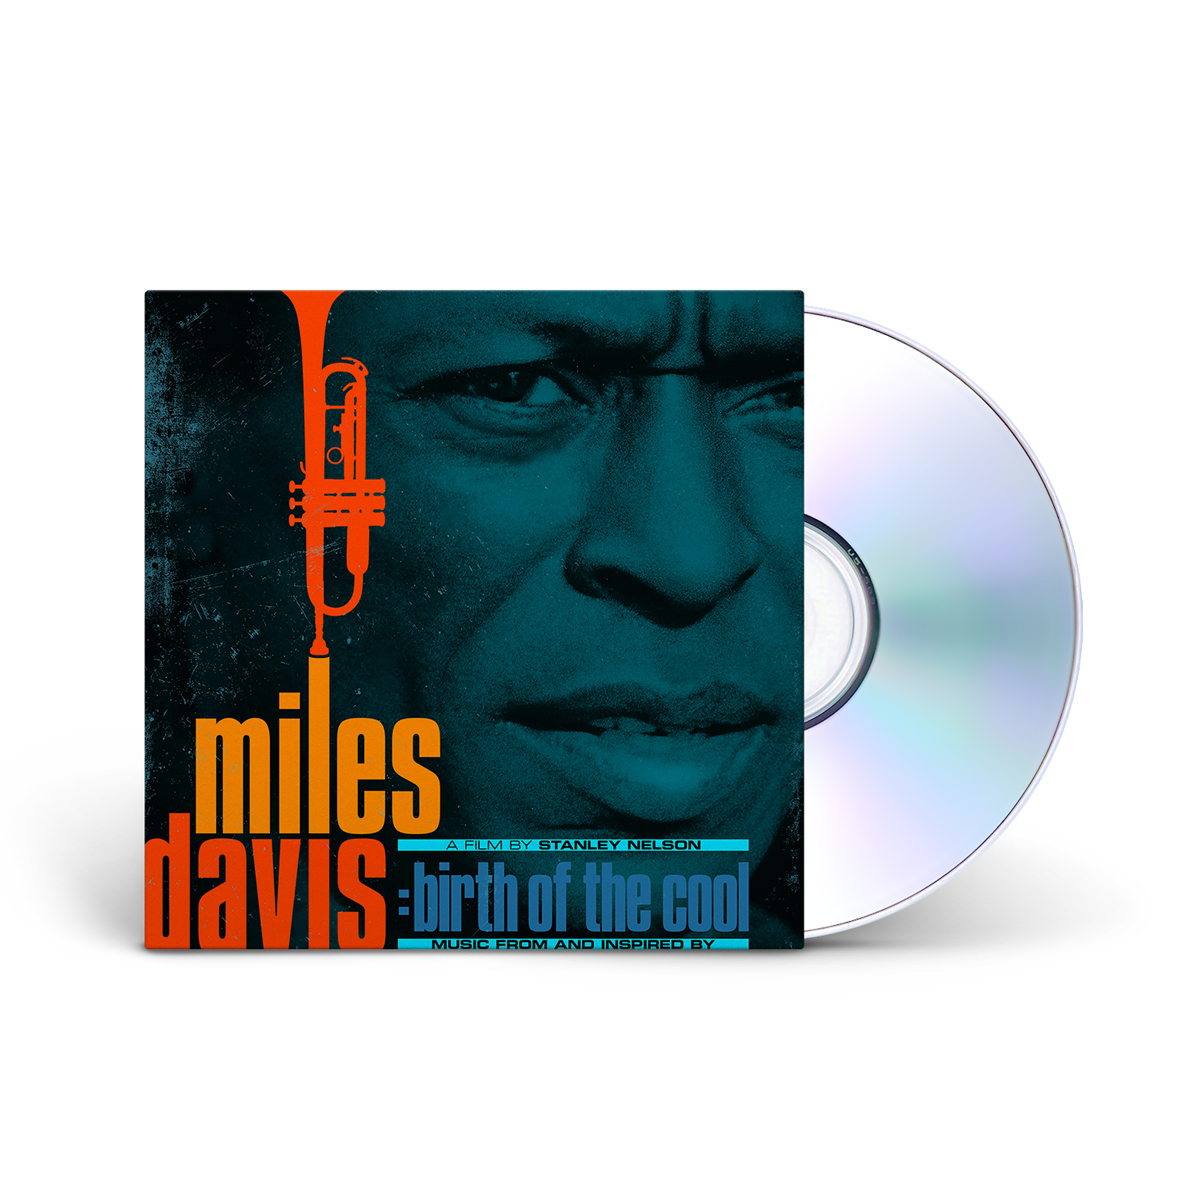 Miles Davis: Birth of the Cool Soundtrack CD